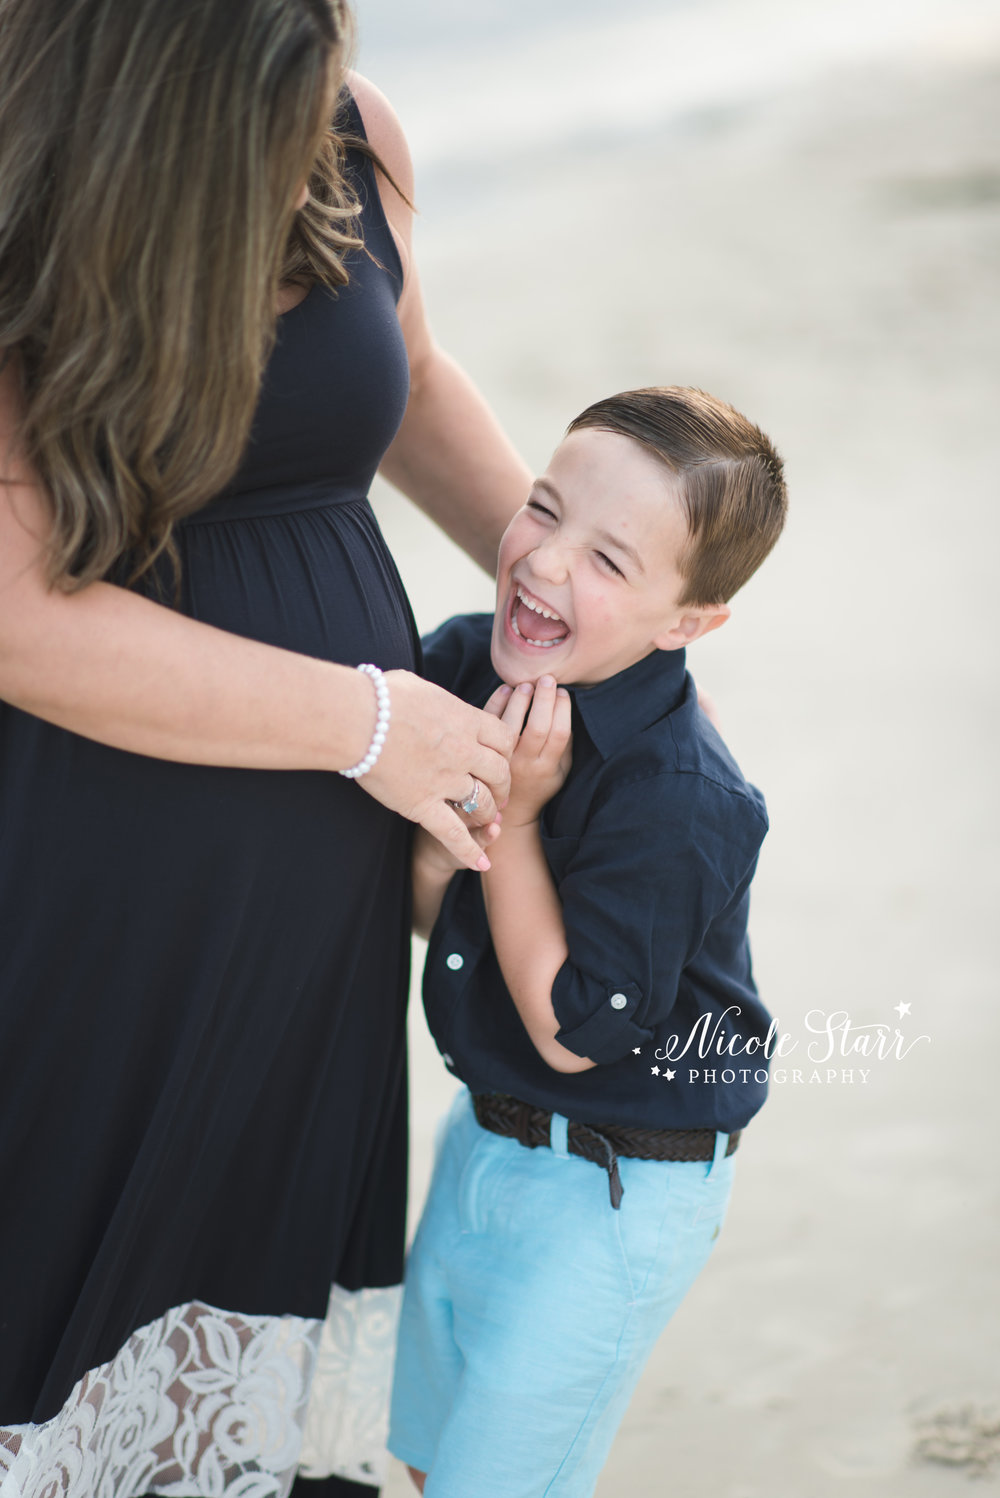 Nicole Starr Photography | Saratoga Springs Maternity Photographer | Boston Maternity Photographer | Upstate NY Maternity Photographer | Maternity Photographer | Maternity session | Maternity dress | Delmar NY Maternity Photographer | Loudonville Maternity photographer | Cape Cod Maternity photographer